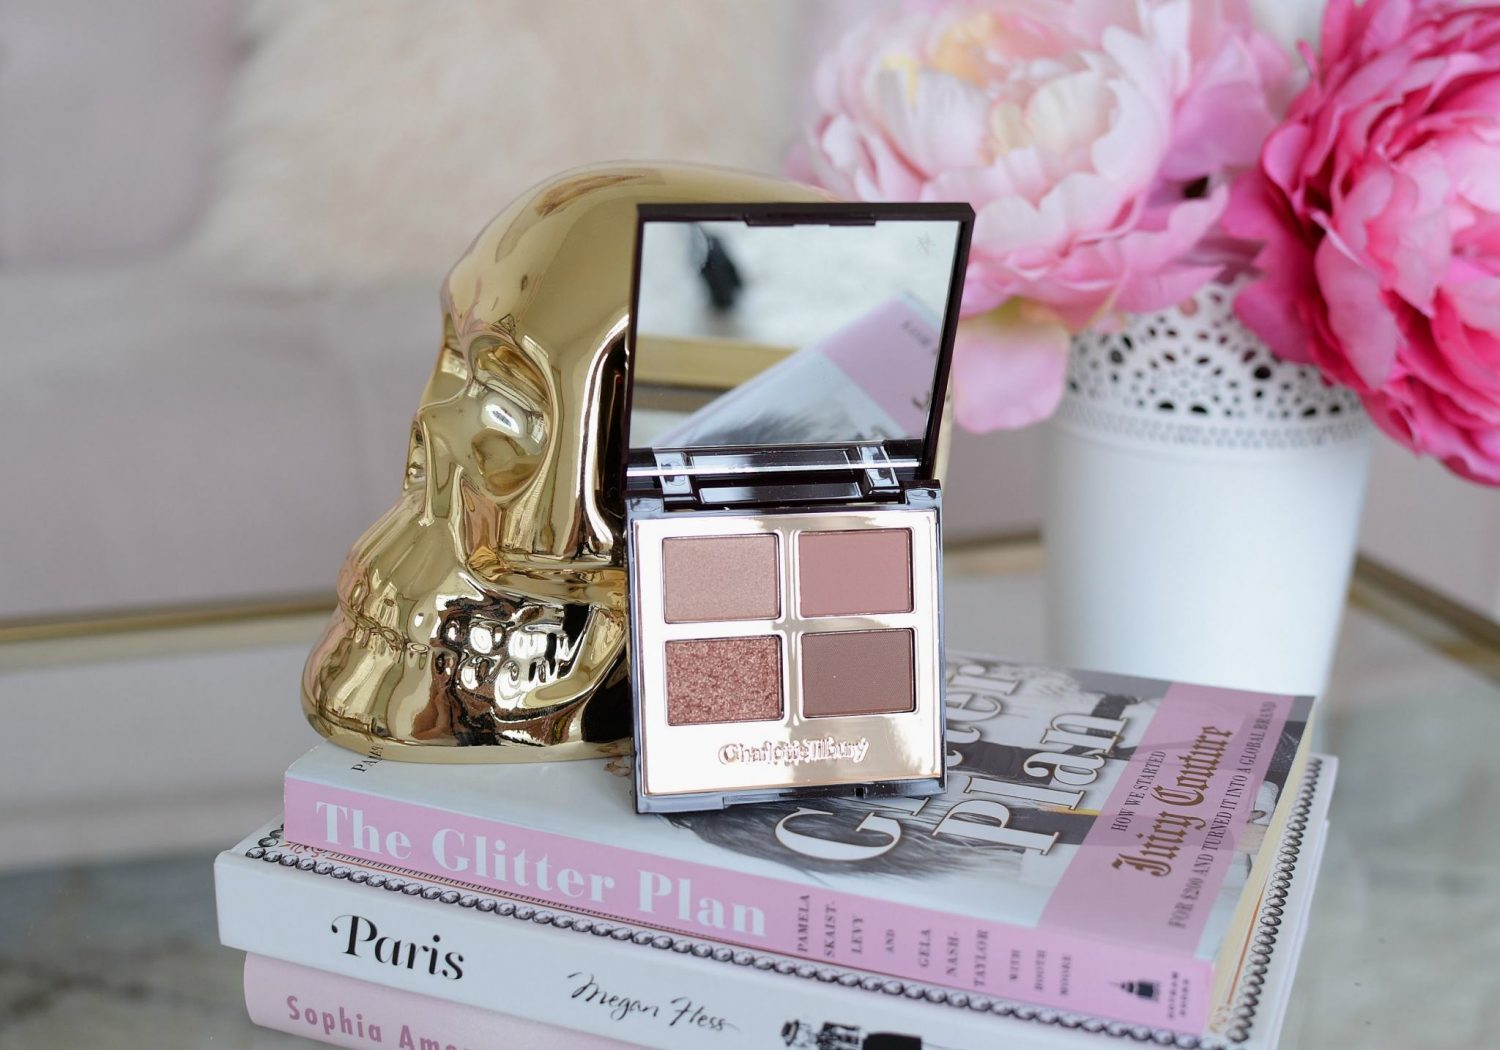 Charlotte Tilbury Luxury Palette Color-Coded Eyeshadow in Pillow Talk